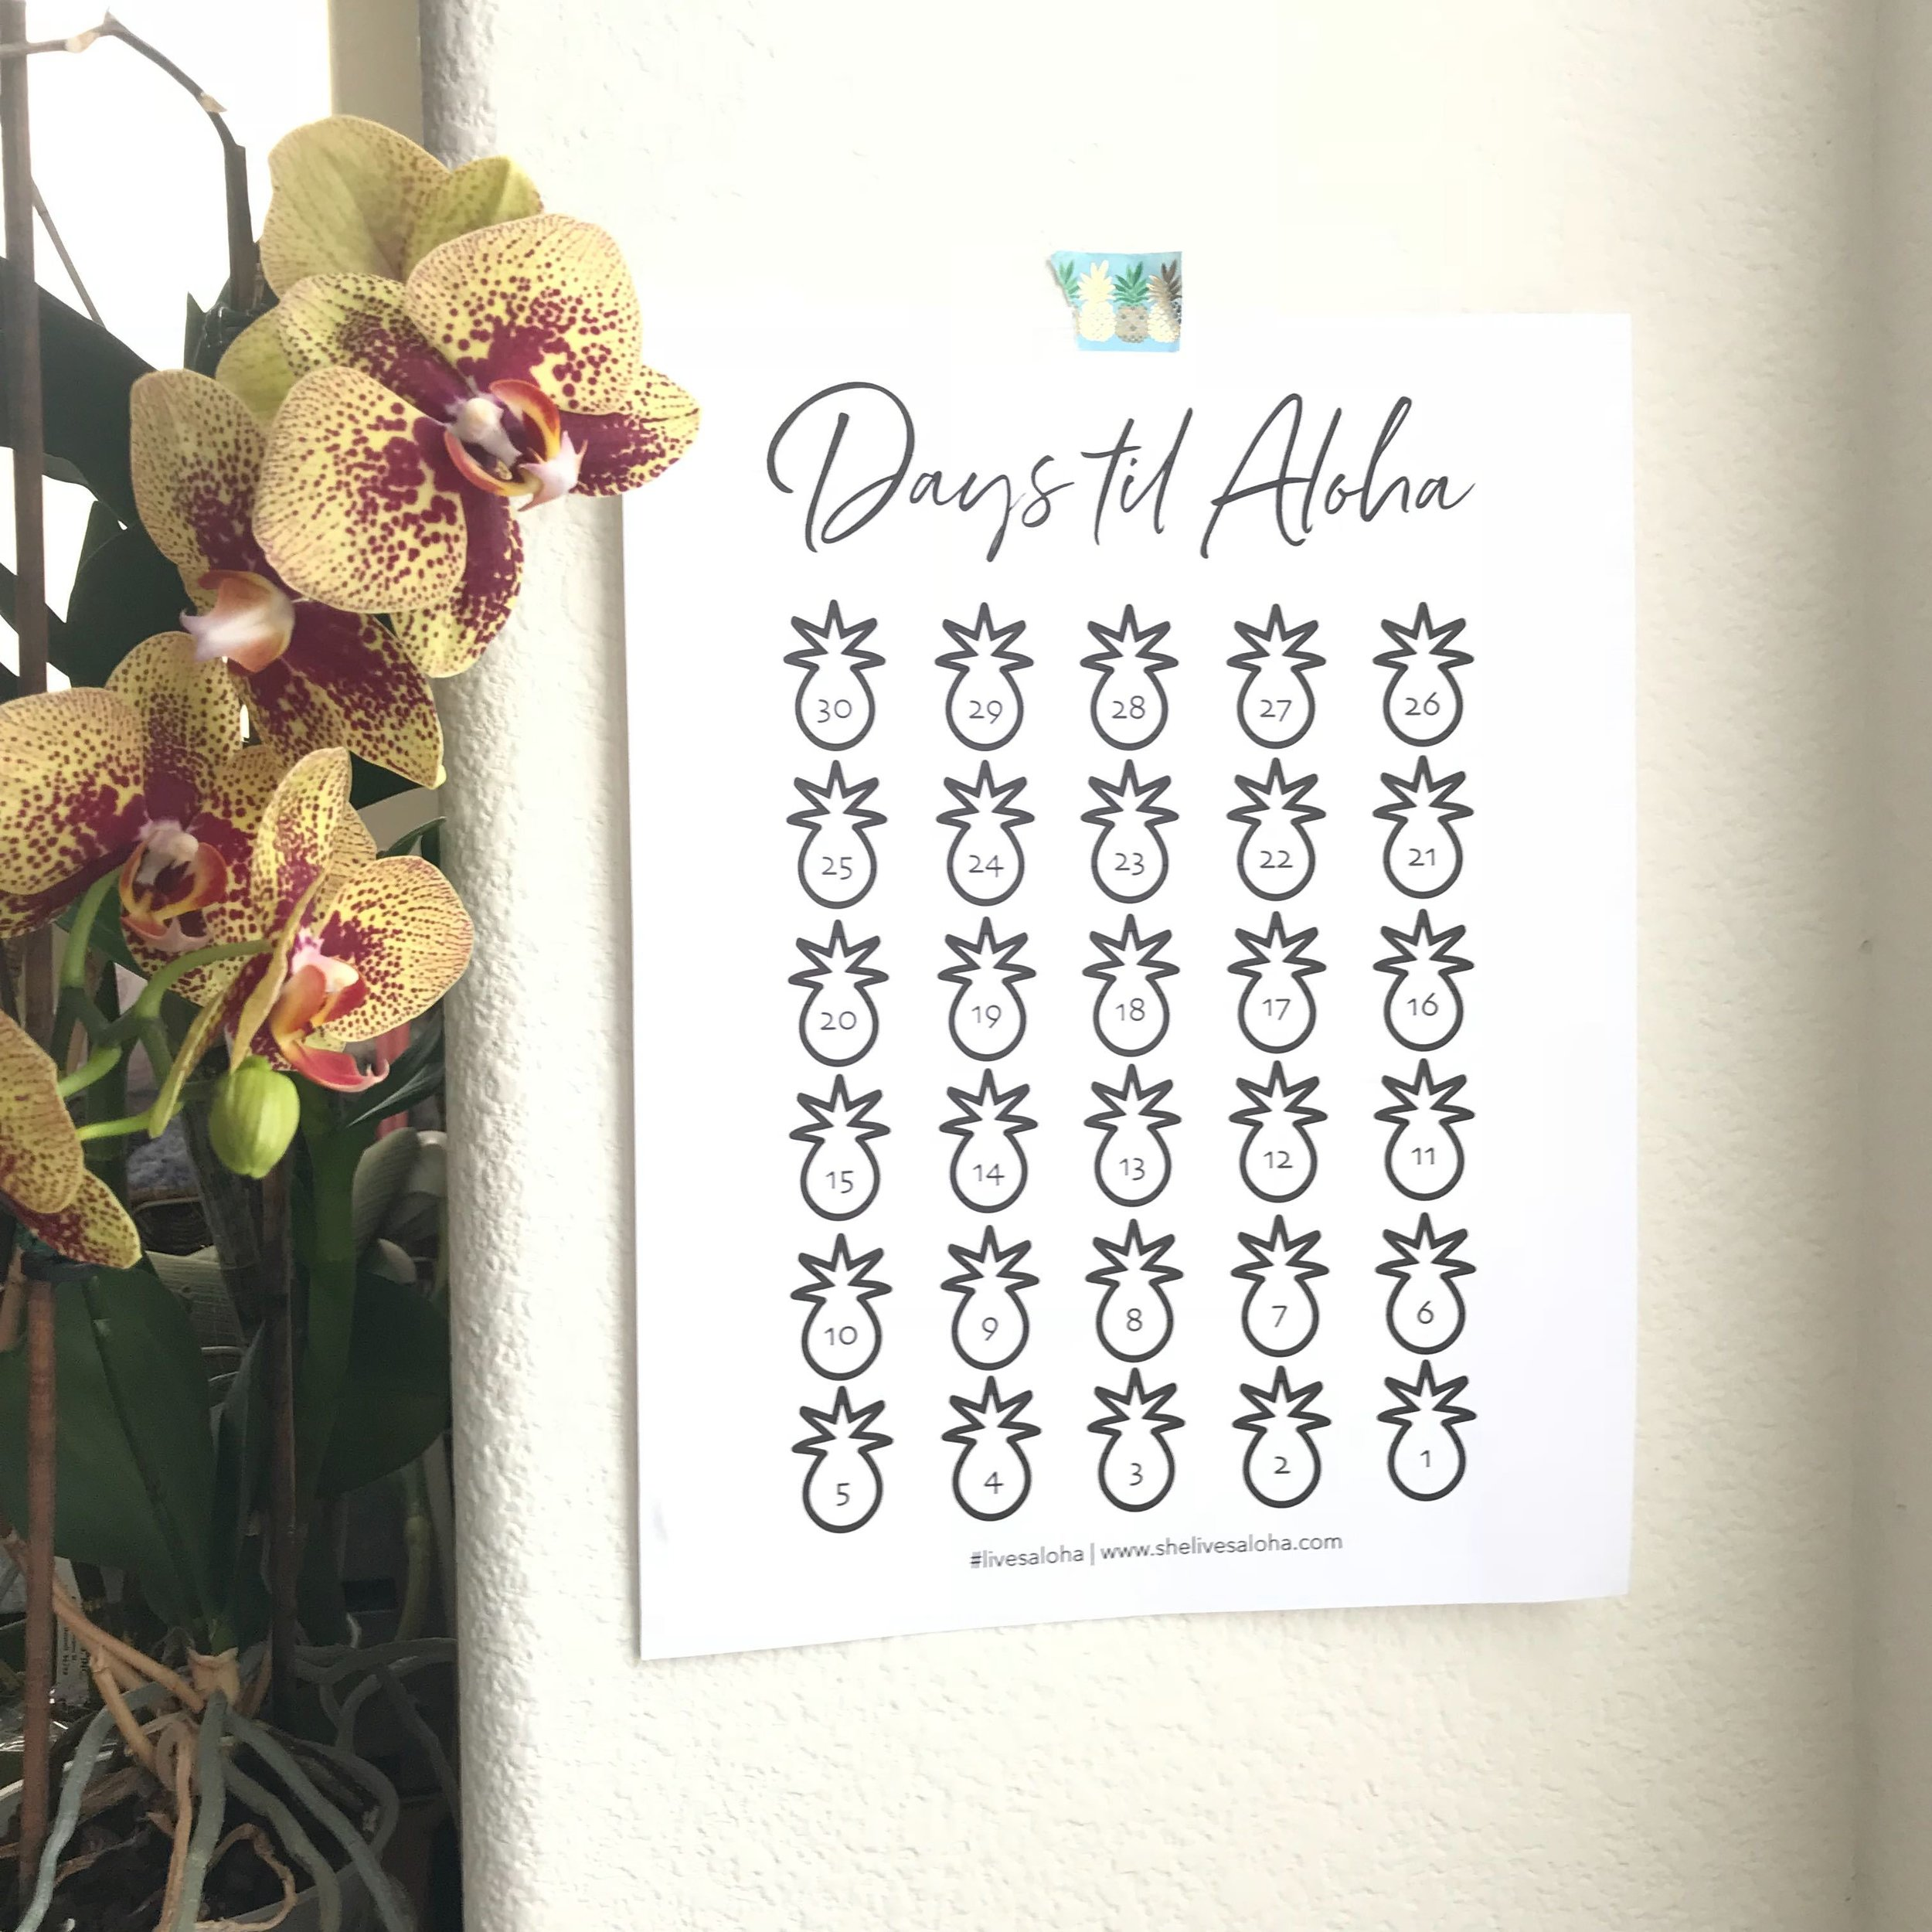 Countdown to Aloha - Sign up and get your free printable vacation countdown calendar.